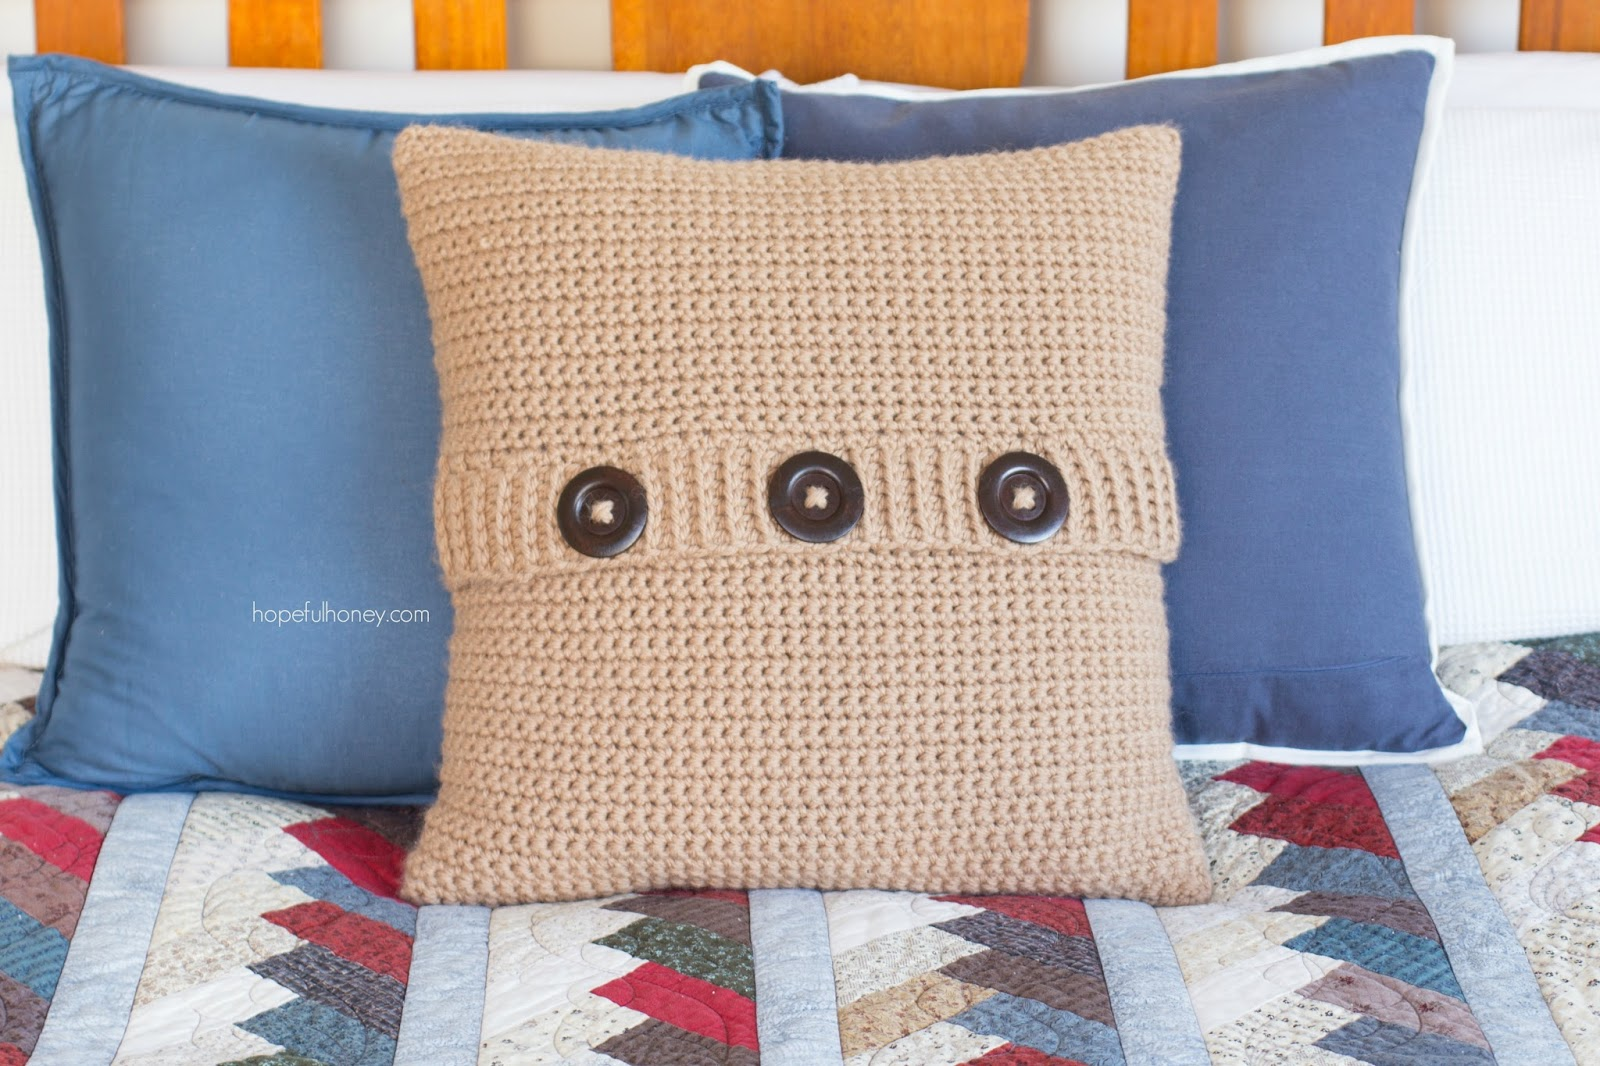 Free crochet patterns for throw pillow covers manet for hopeful honey craft crochet create cabled throw bankloansurffo Image collections